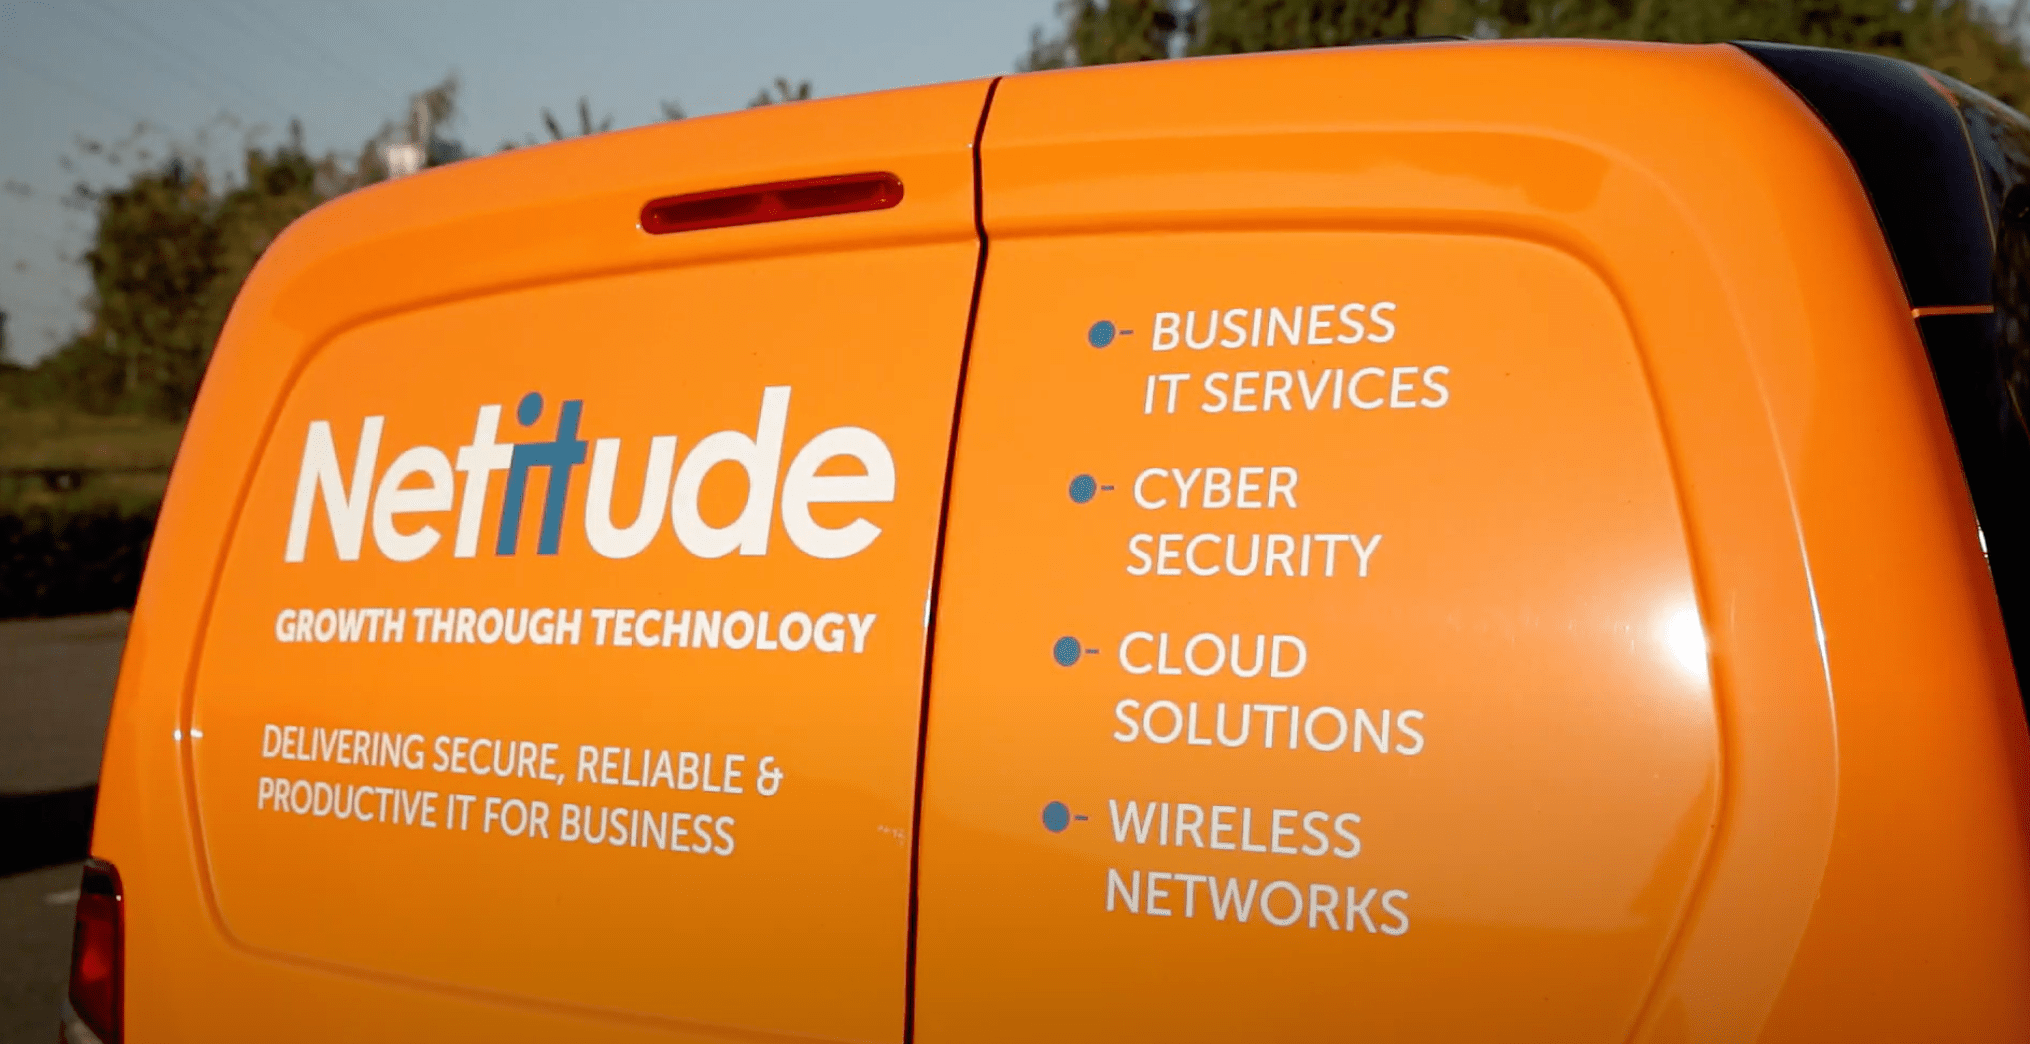 Still from Netitude video showing the rear door text of a Netitude van.